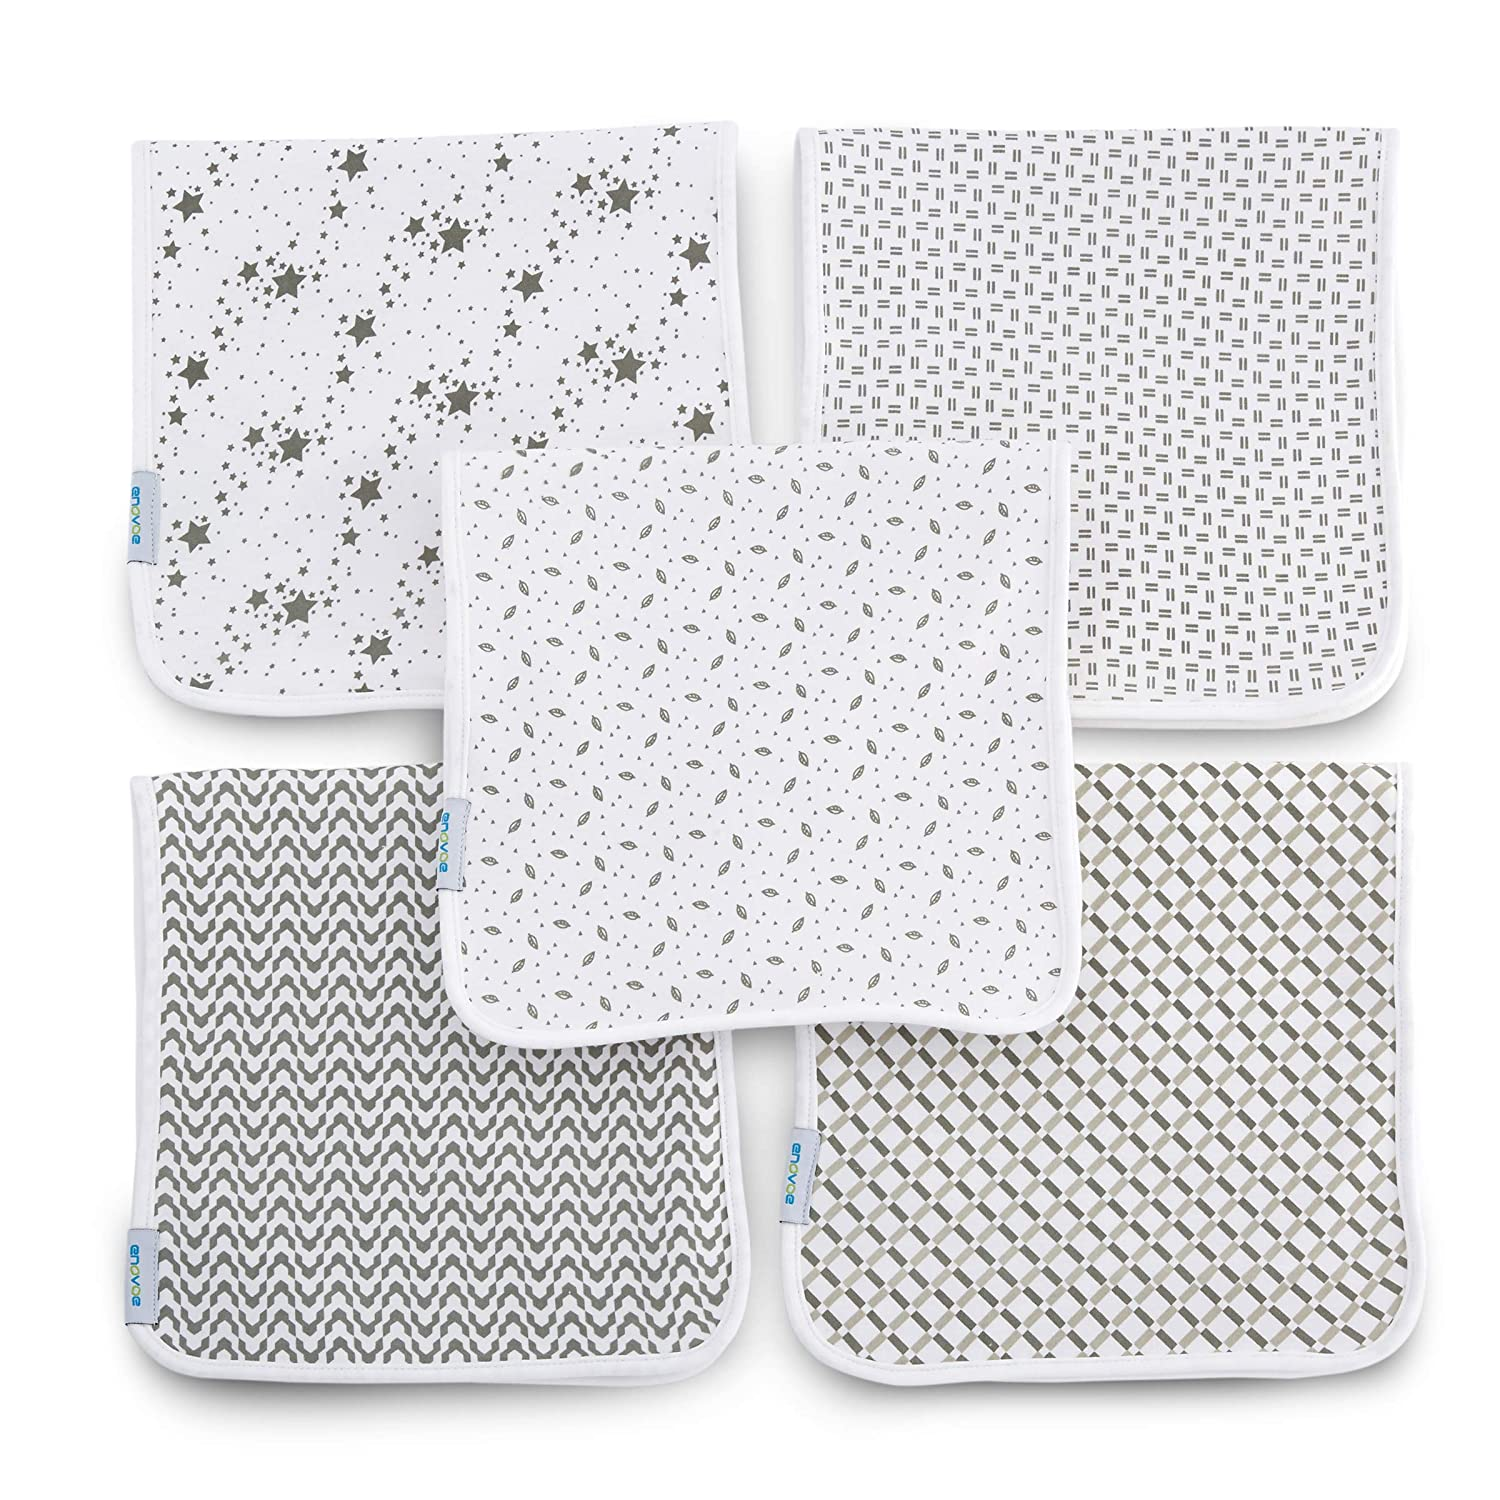 """Enovoe Organic Burp Cloths for Boys and Girls (5 Pack) - 21"""" x 10"""" - 100% GOTS Certified Organic Cotton, Extremely Absorbent, Soft and Durable Burping Cloth Rags, Perfect for Babies Drool and Spit Ups"""